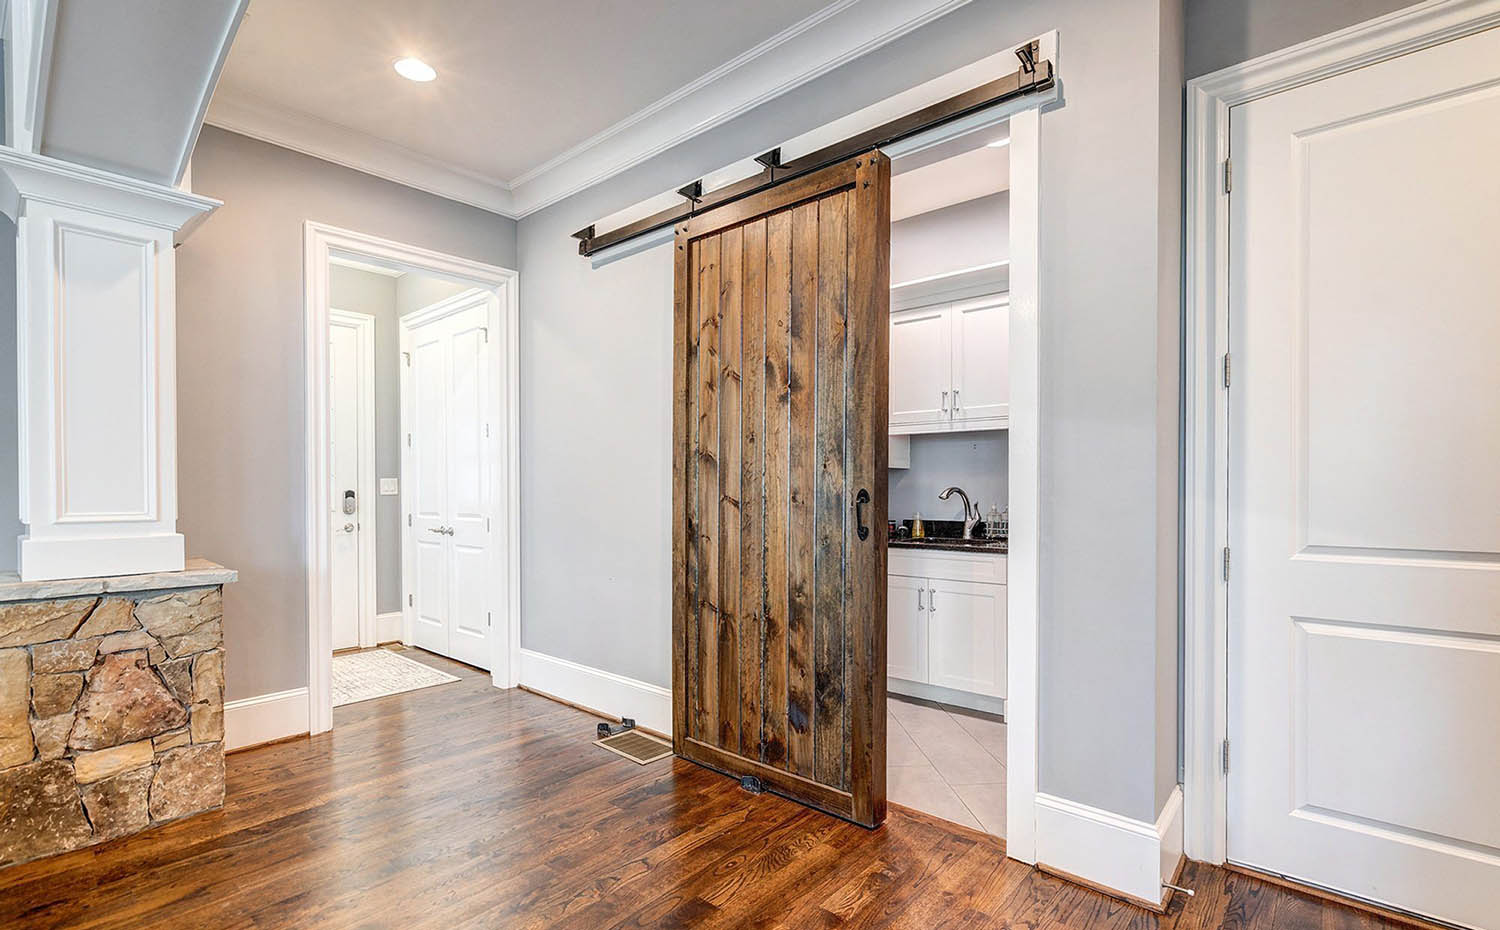 Reclaimed wood prep kitchen barn door with black mounting hardware and handle. Matching hardwood floors with gray walls, white trim and real stone interior veneer.